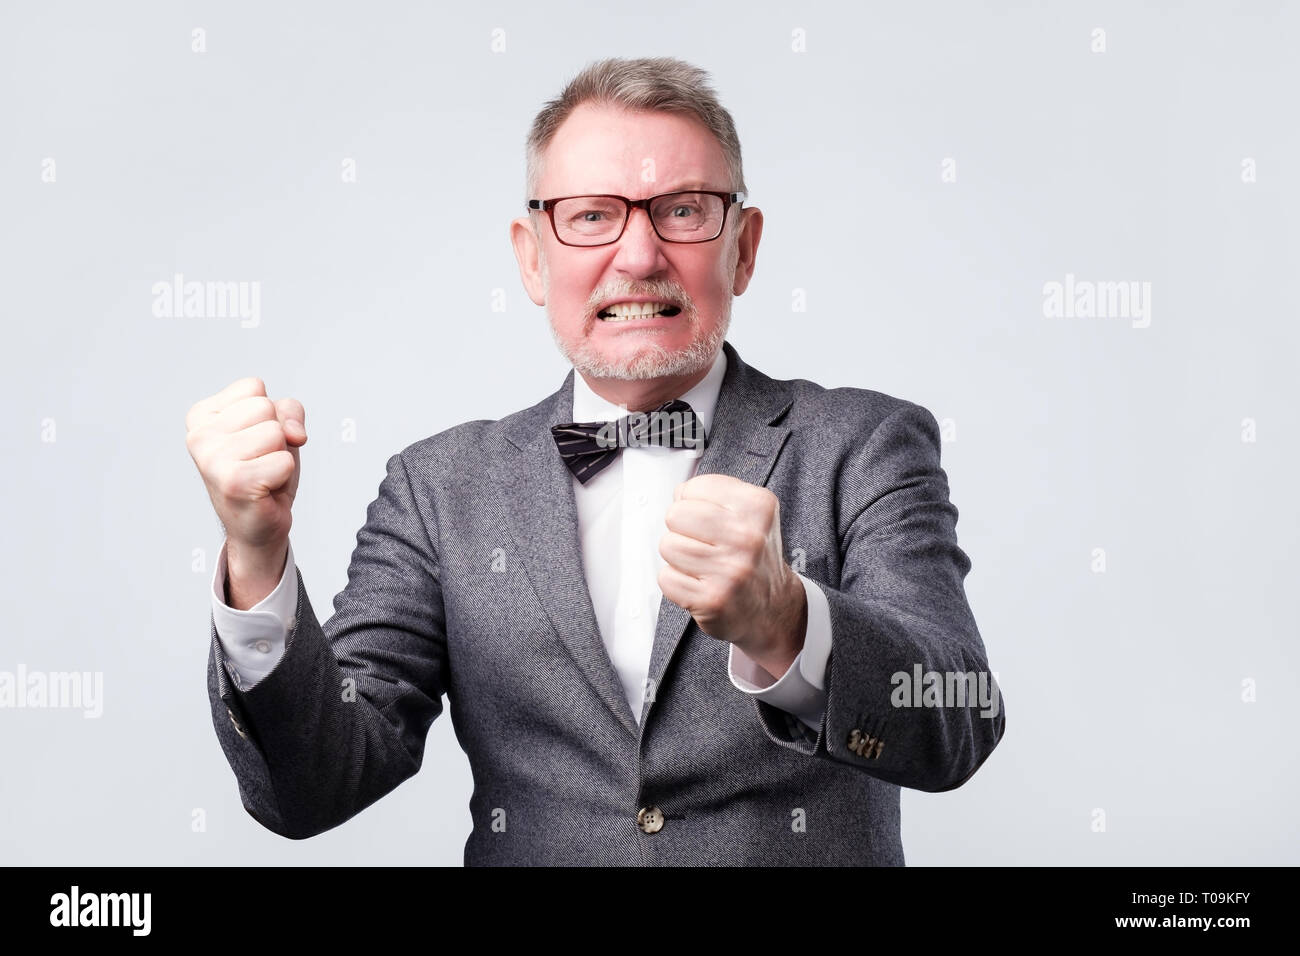 Handsome elegant senior man angry and mad raising fist up - Stock Image